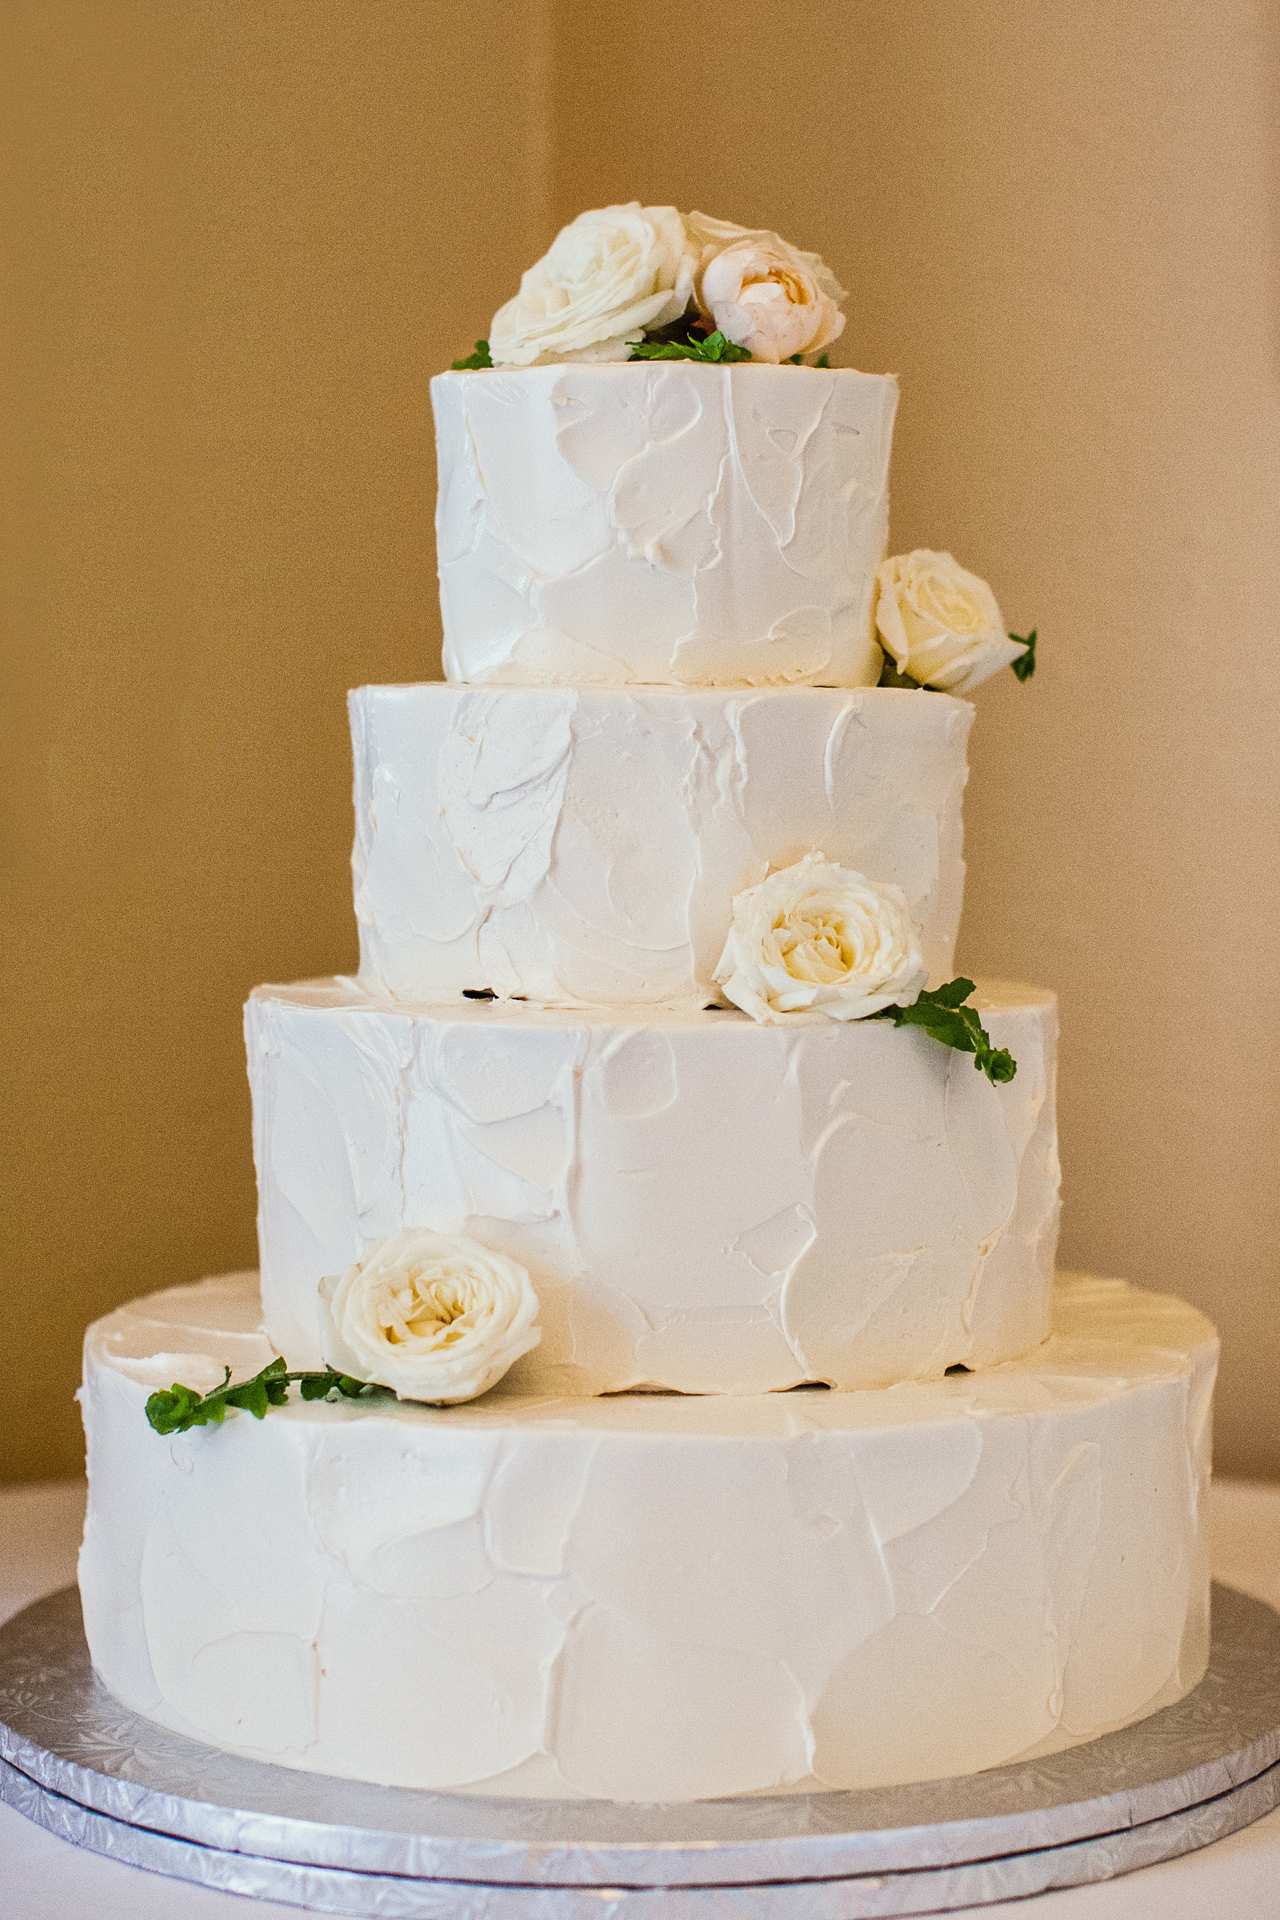 West Coast Decorating Style The Buttery Designed This Simple Cake To End The Charming